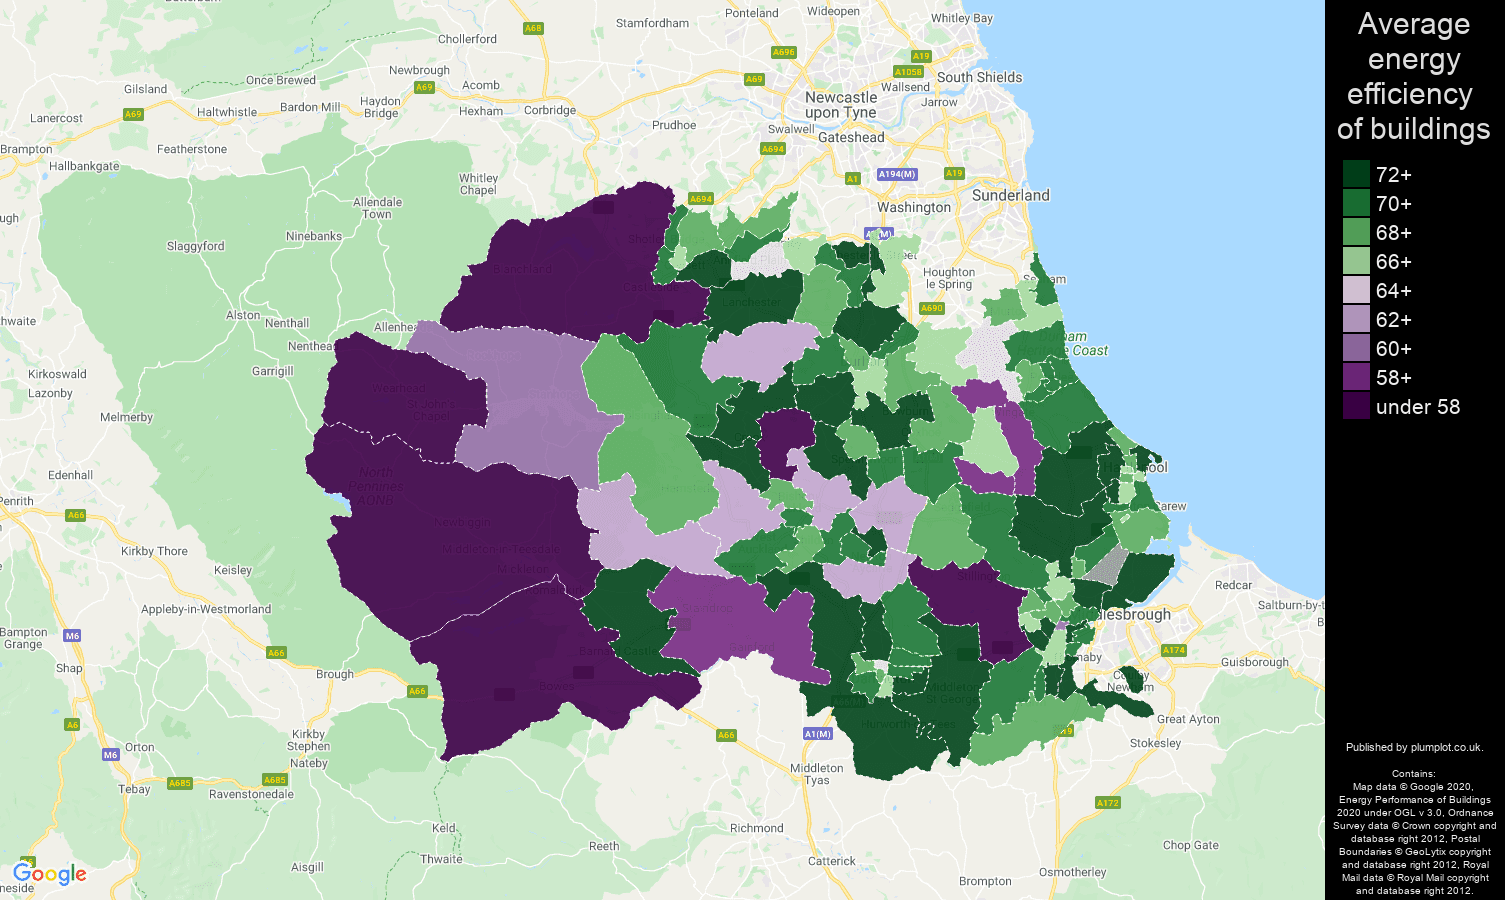 Durham county map of energy efficiency of flats